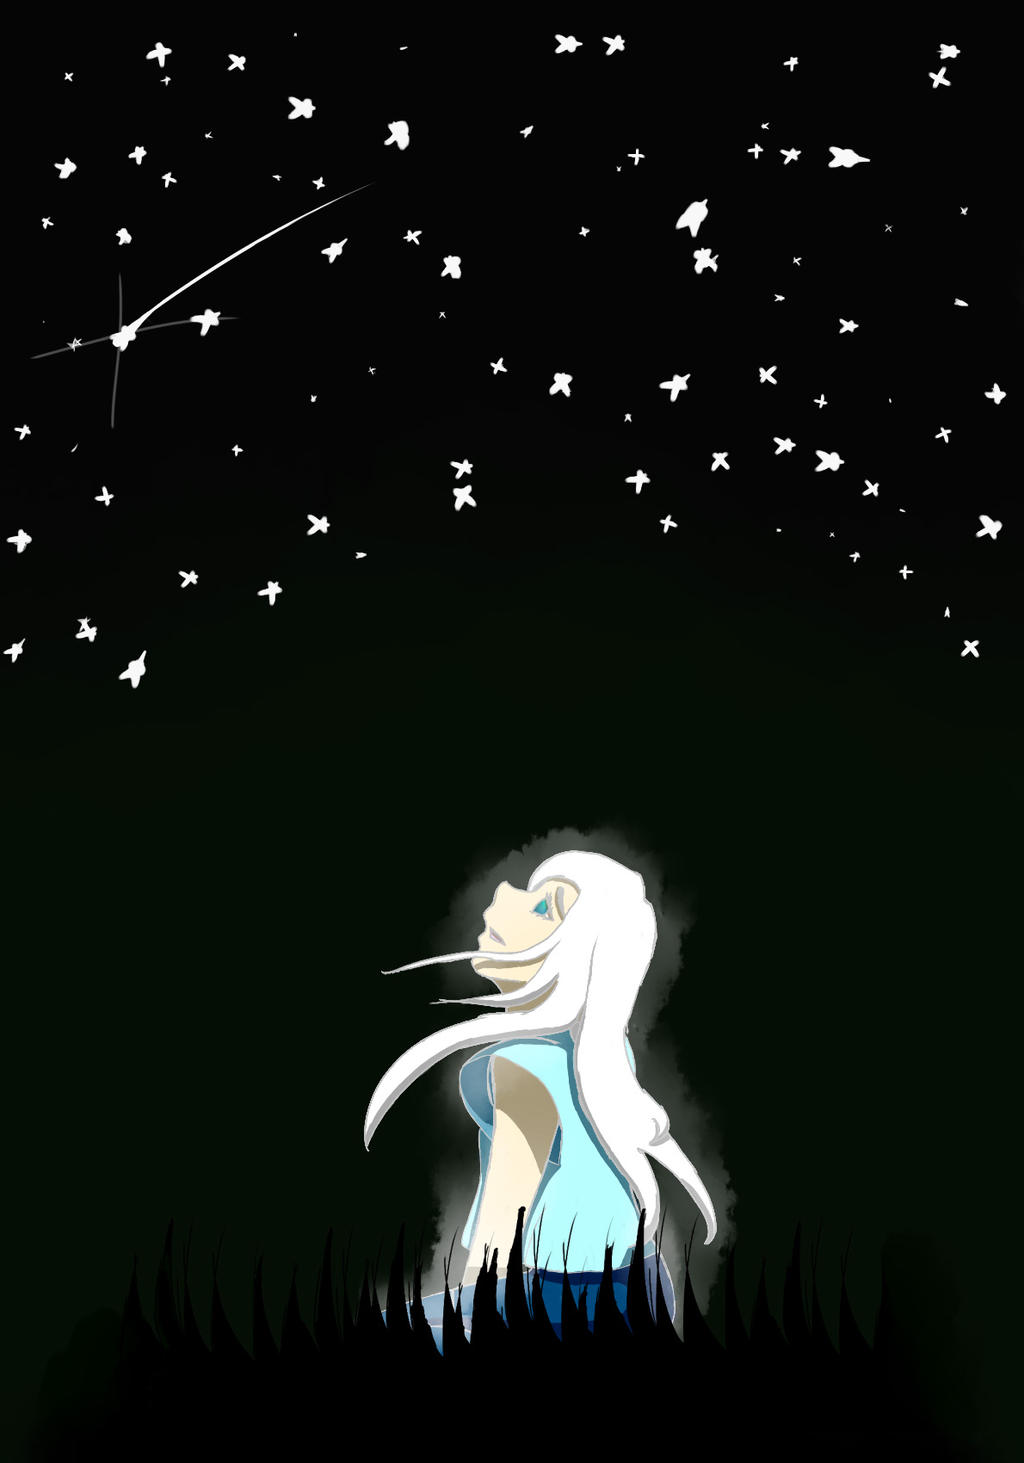 Starchild and the wishing star